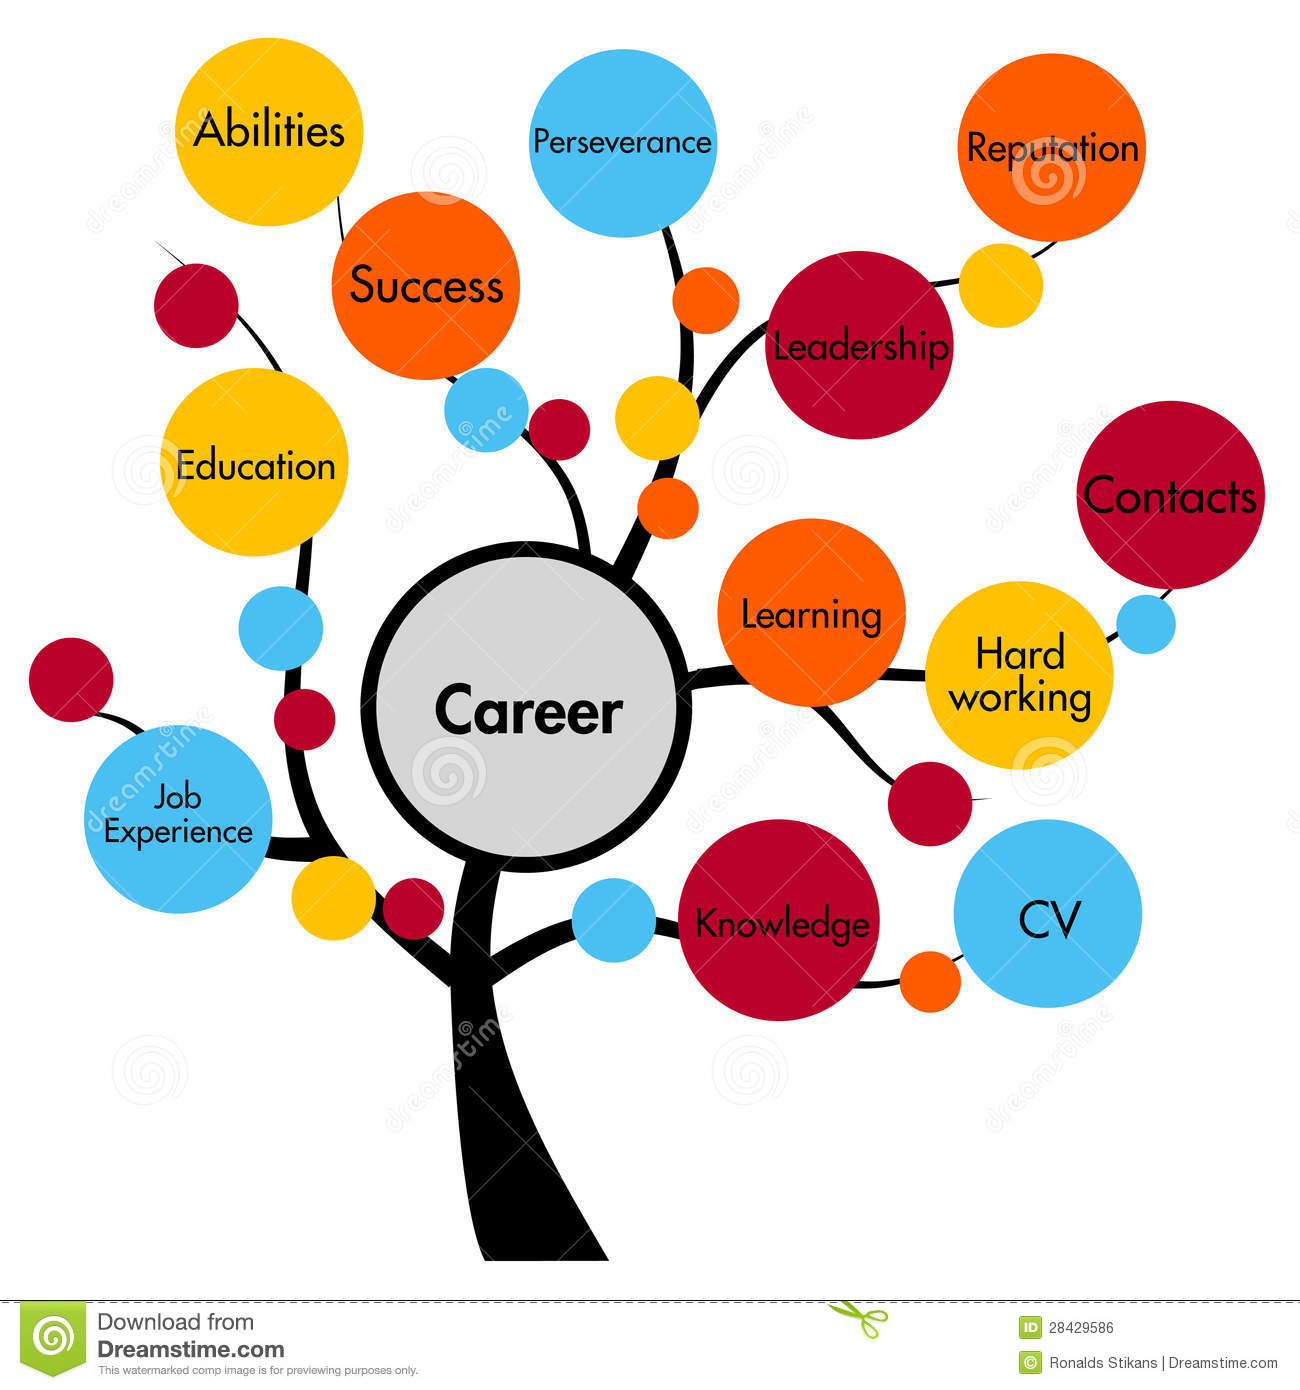 Career concept tree stock illustration. Illustration of occupation